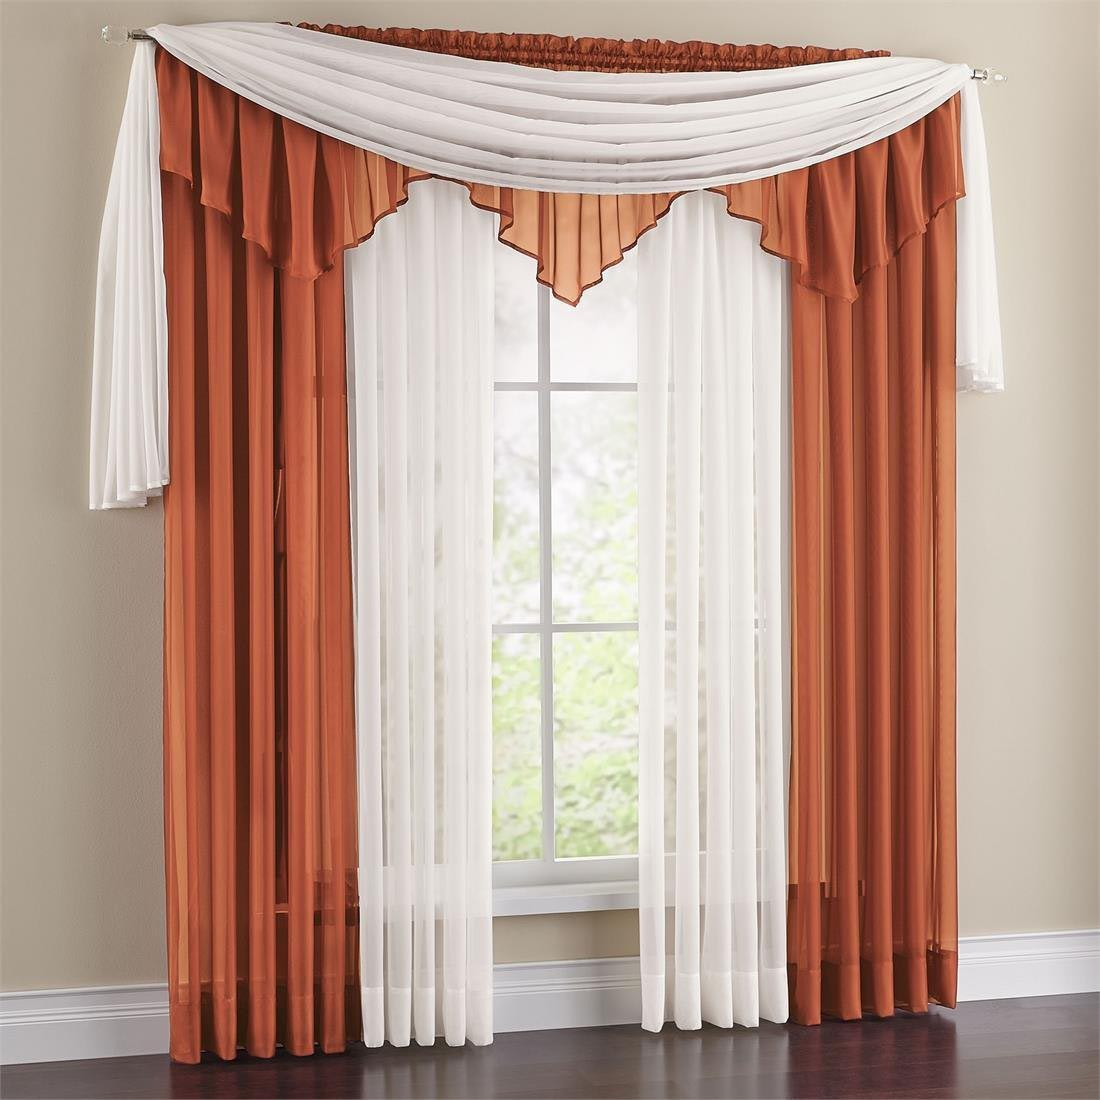 put the classic on and shades hang lorigs ways scarf red its over valance sheer a best curtains to pinterest images just curtain black